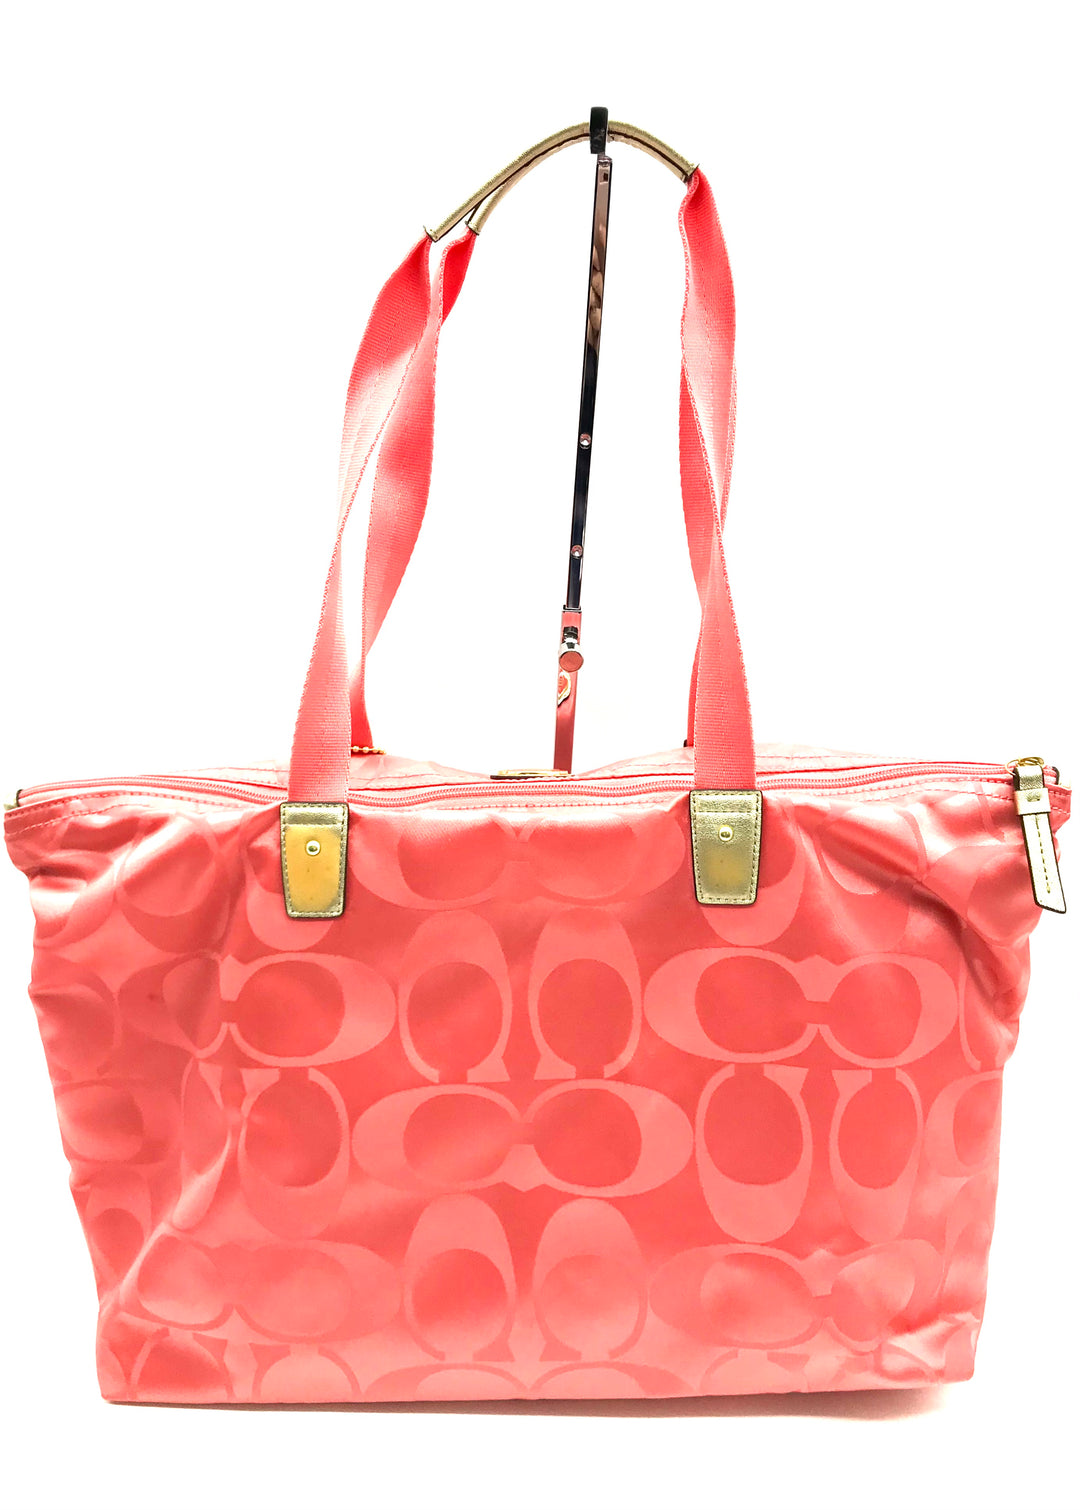 "Photo #2 - BRAND: COACH <BR>STYLE: HANDBAG DESIGNER <BR>COLOR: PEACH <BR>SIZE: LARGE <BR>SKU: 262-26211-131031<BR><BR>APPROX. 17.75""L X 11""H X 7""D. INCLUDES DETACHABLE INTERIOR POUCH APPROX. 10""L X 7.25""H. GENTLE WEAR ON BACK"